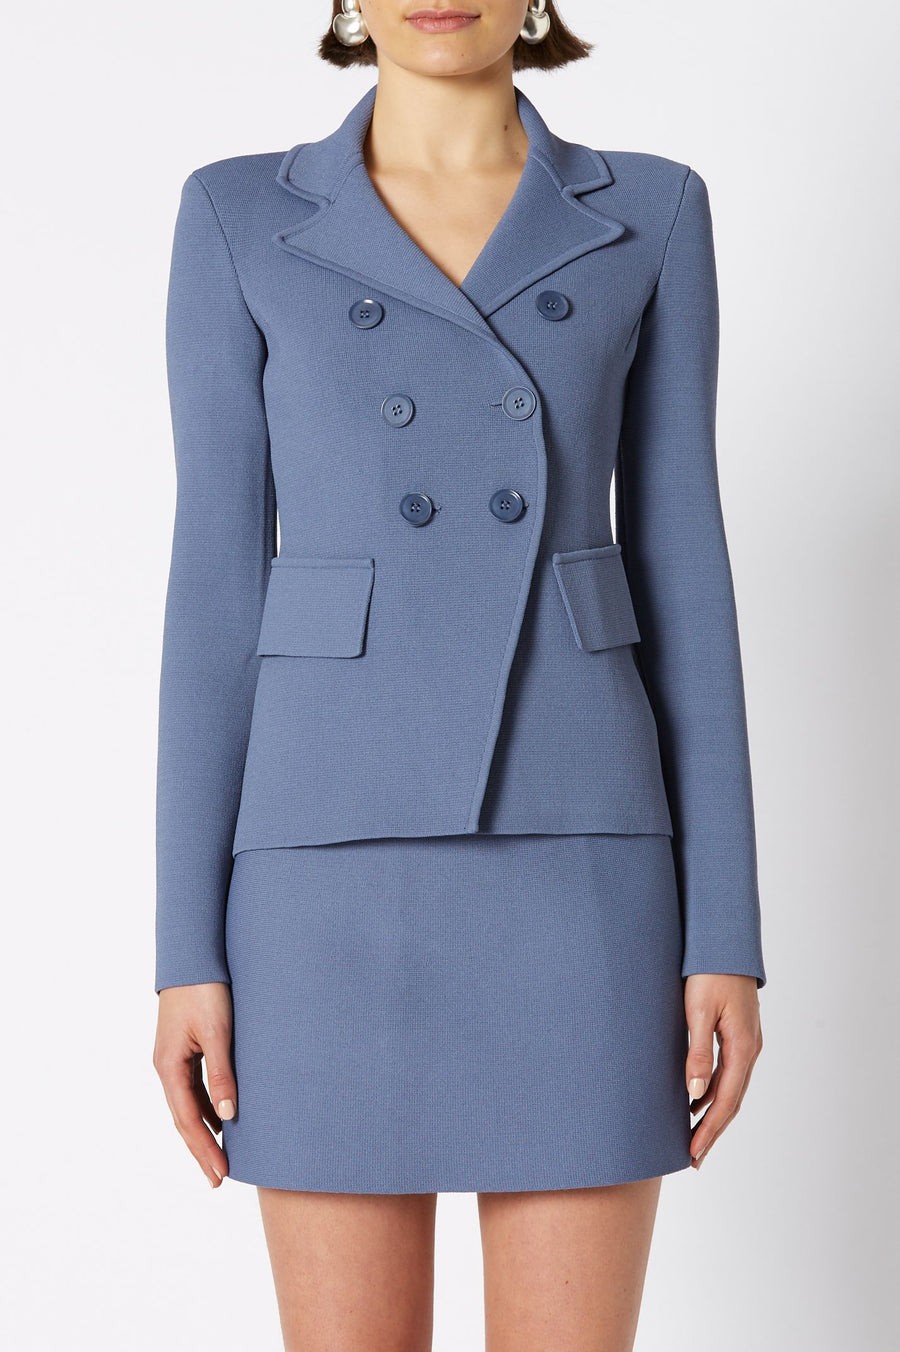 CREPE KNIT TAILORED JACKET, DOUBLE BREASTED, LONG SLEEVE, COLOR LIGHT INDIGO